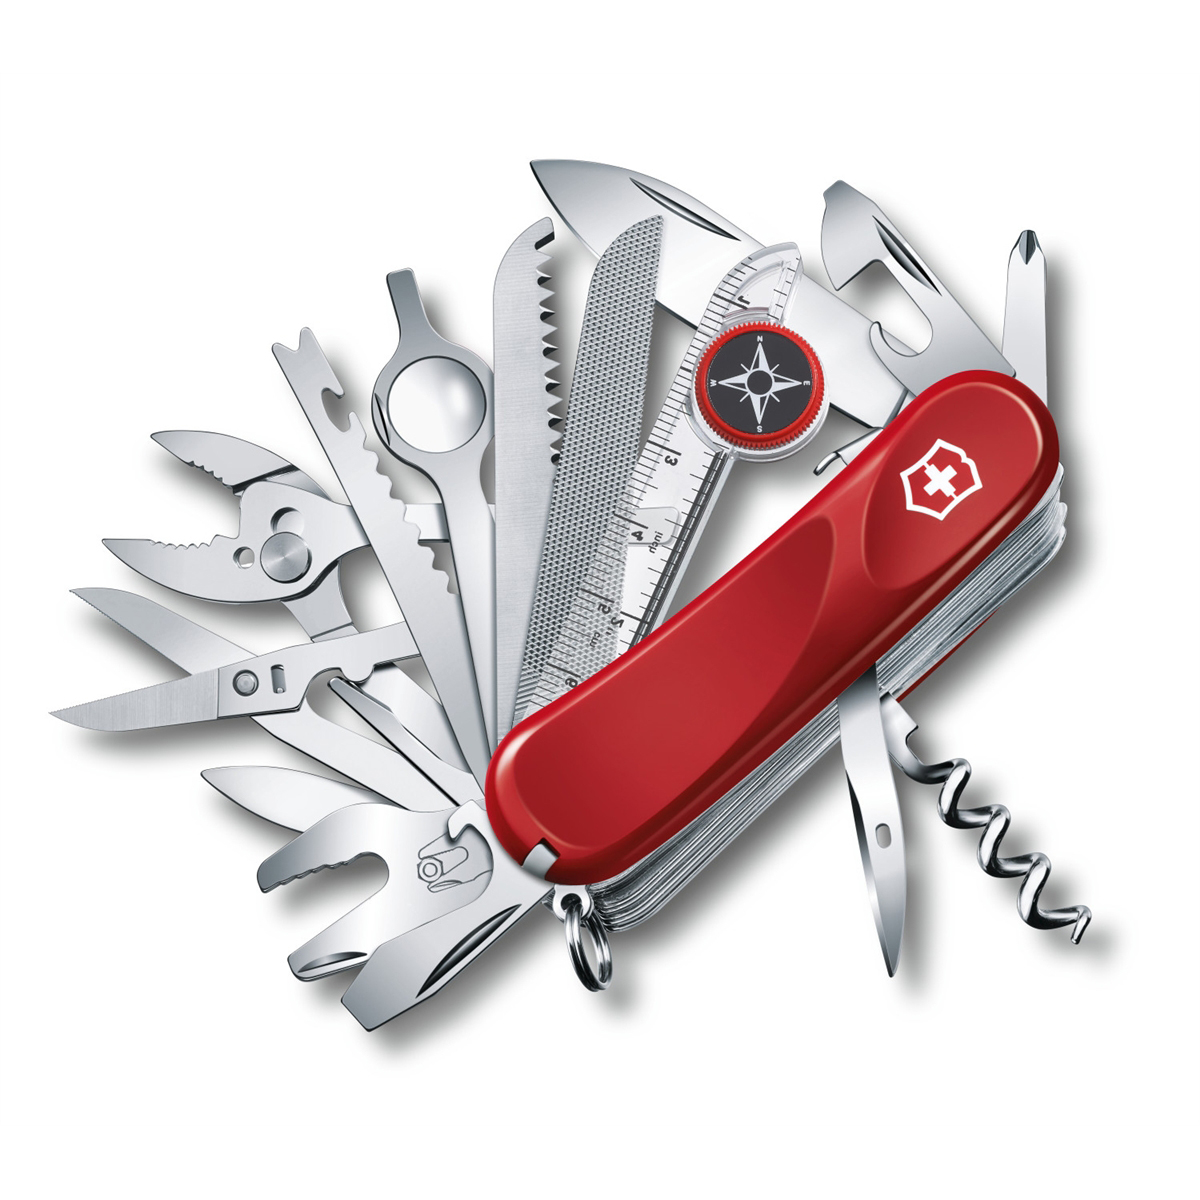 Victorinox Swiss Army Knife Multi-Tool Evolution S54 Tool Chest Plus - Red